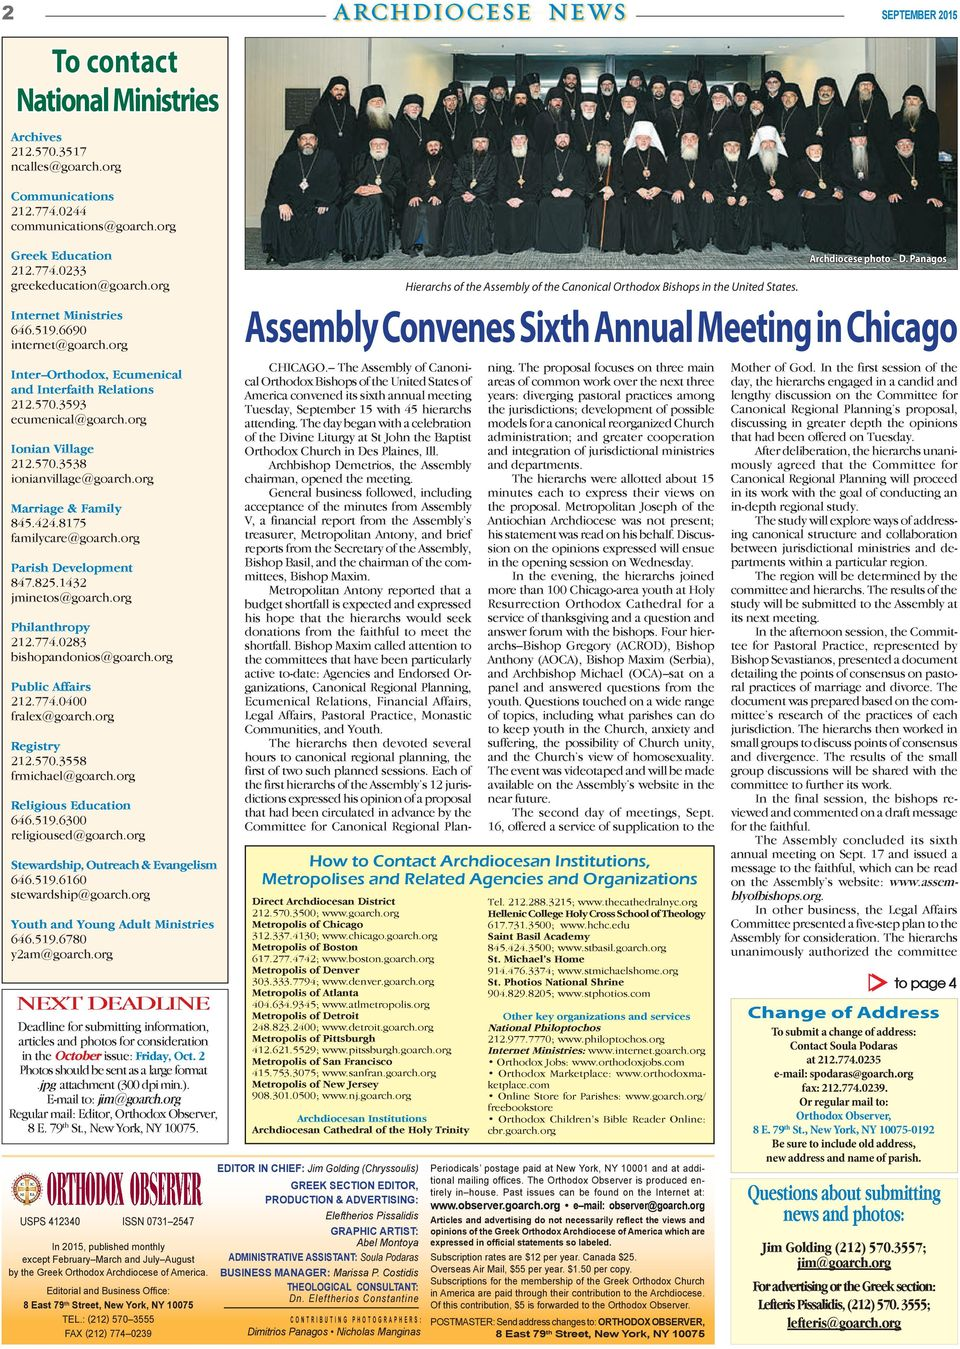 Assembly Convenes Sixth Annual Meeting in Chicago Inter Orthodox, Ecumenical and Interfaith Relations 212.570.3593 ecumenical@goarch.org Ionian Village 212.570.3538 ionianvillage@goarch.